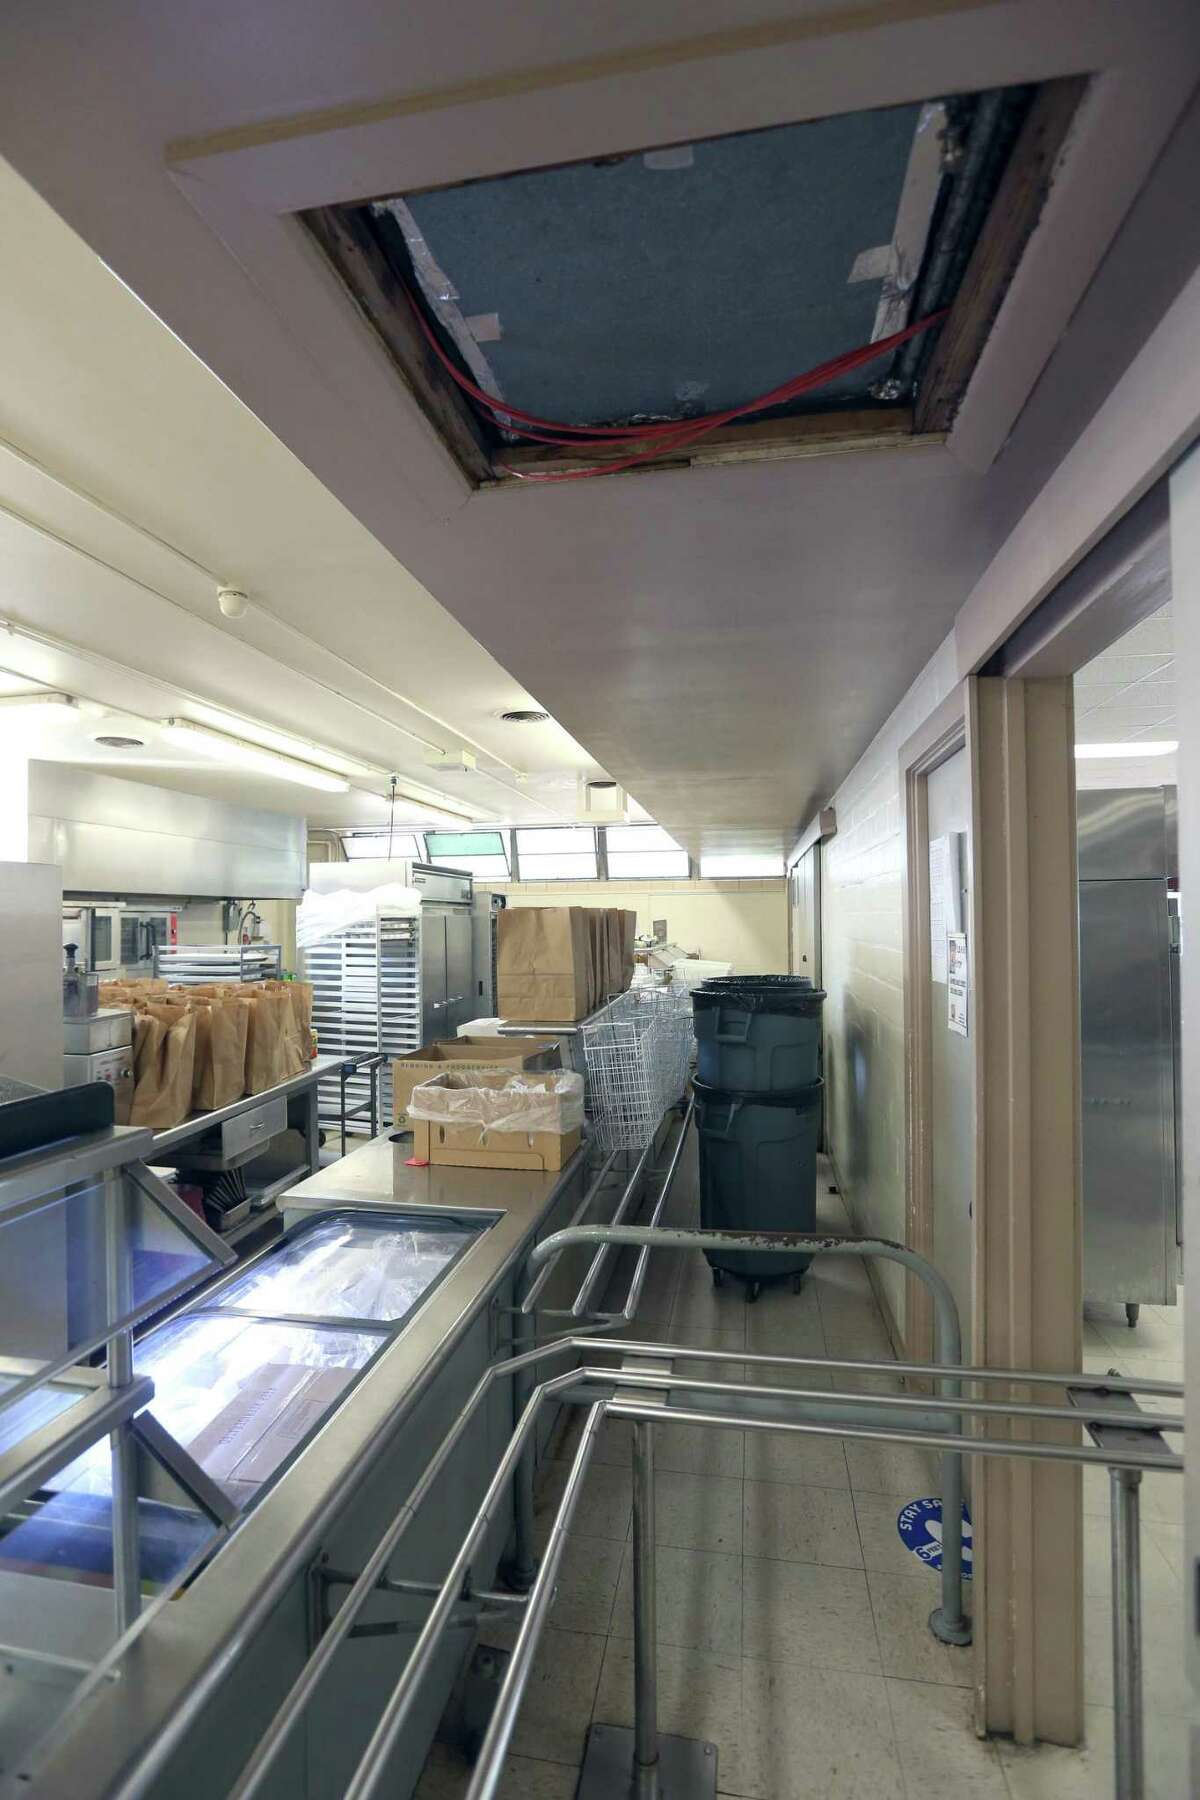 Outdated lunchroom facilities at Rhodes Middle School in the San Antonio Independent Schoold District would be renovated.